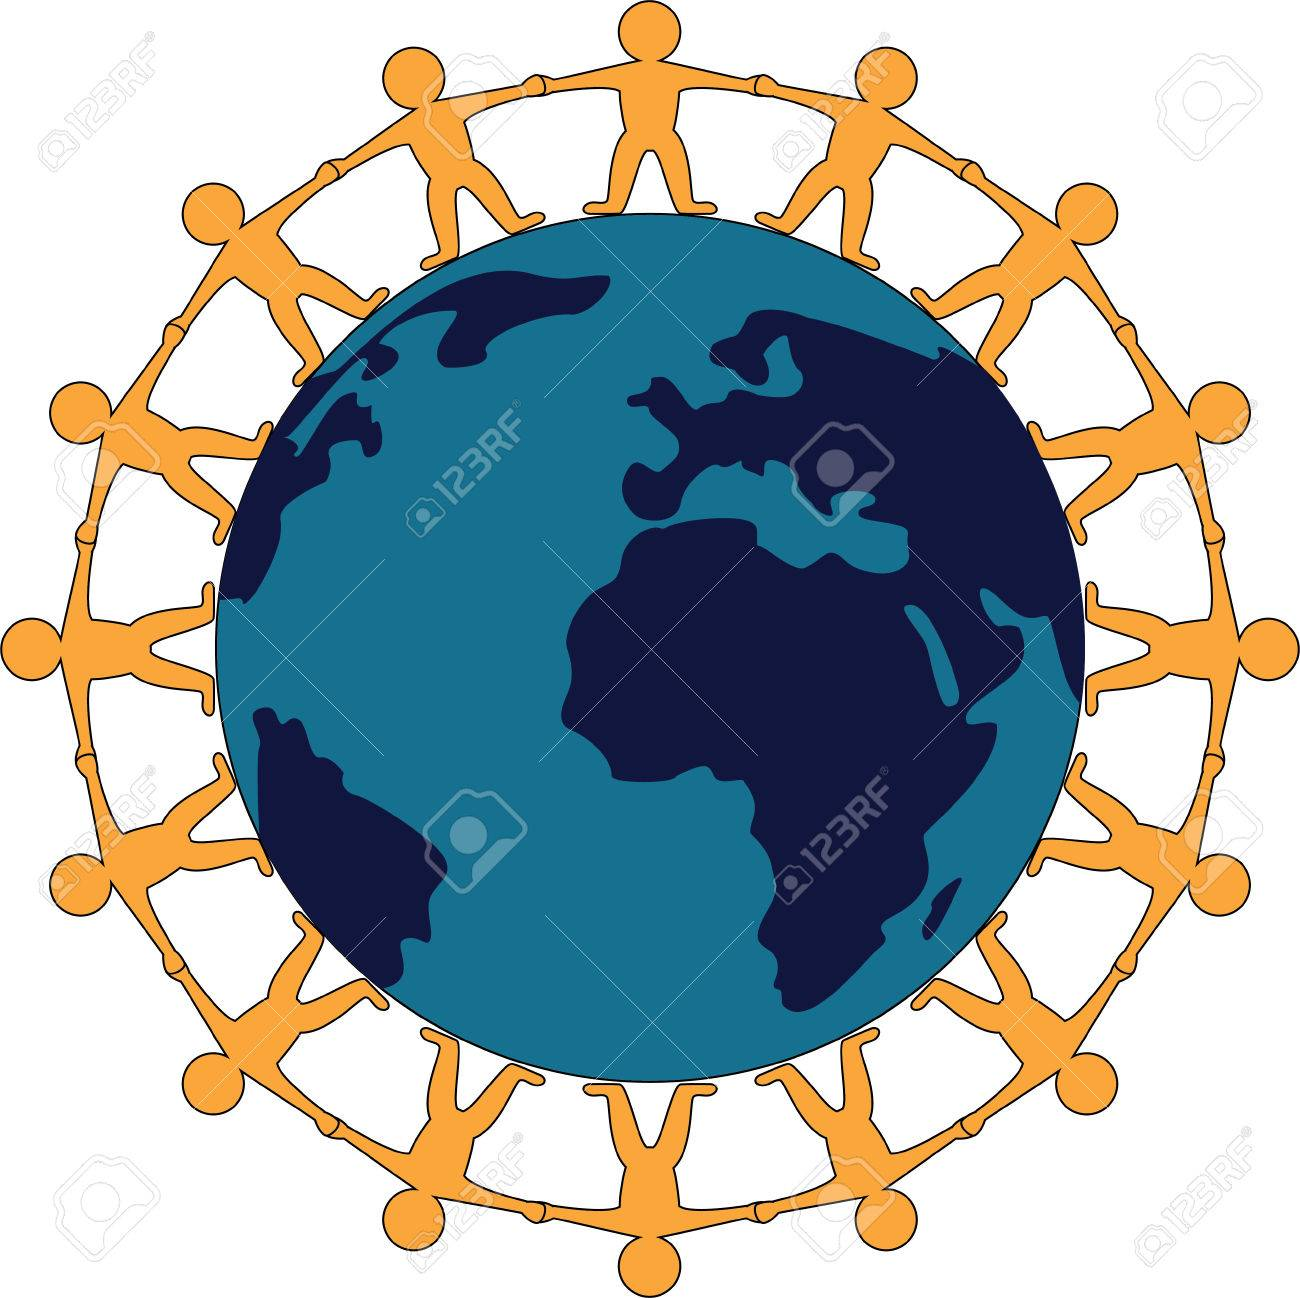 Symbol of world peace with people standing hand in hand around symbol of world peace with people standing hand in hand around the globe stock vector biocorpaavc